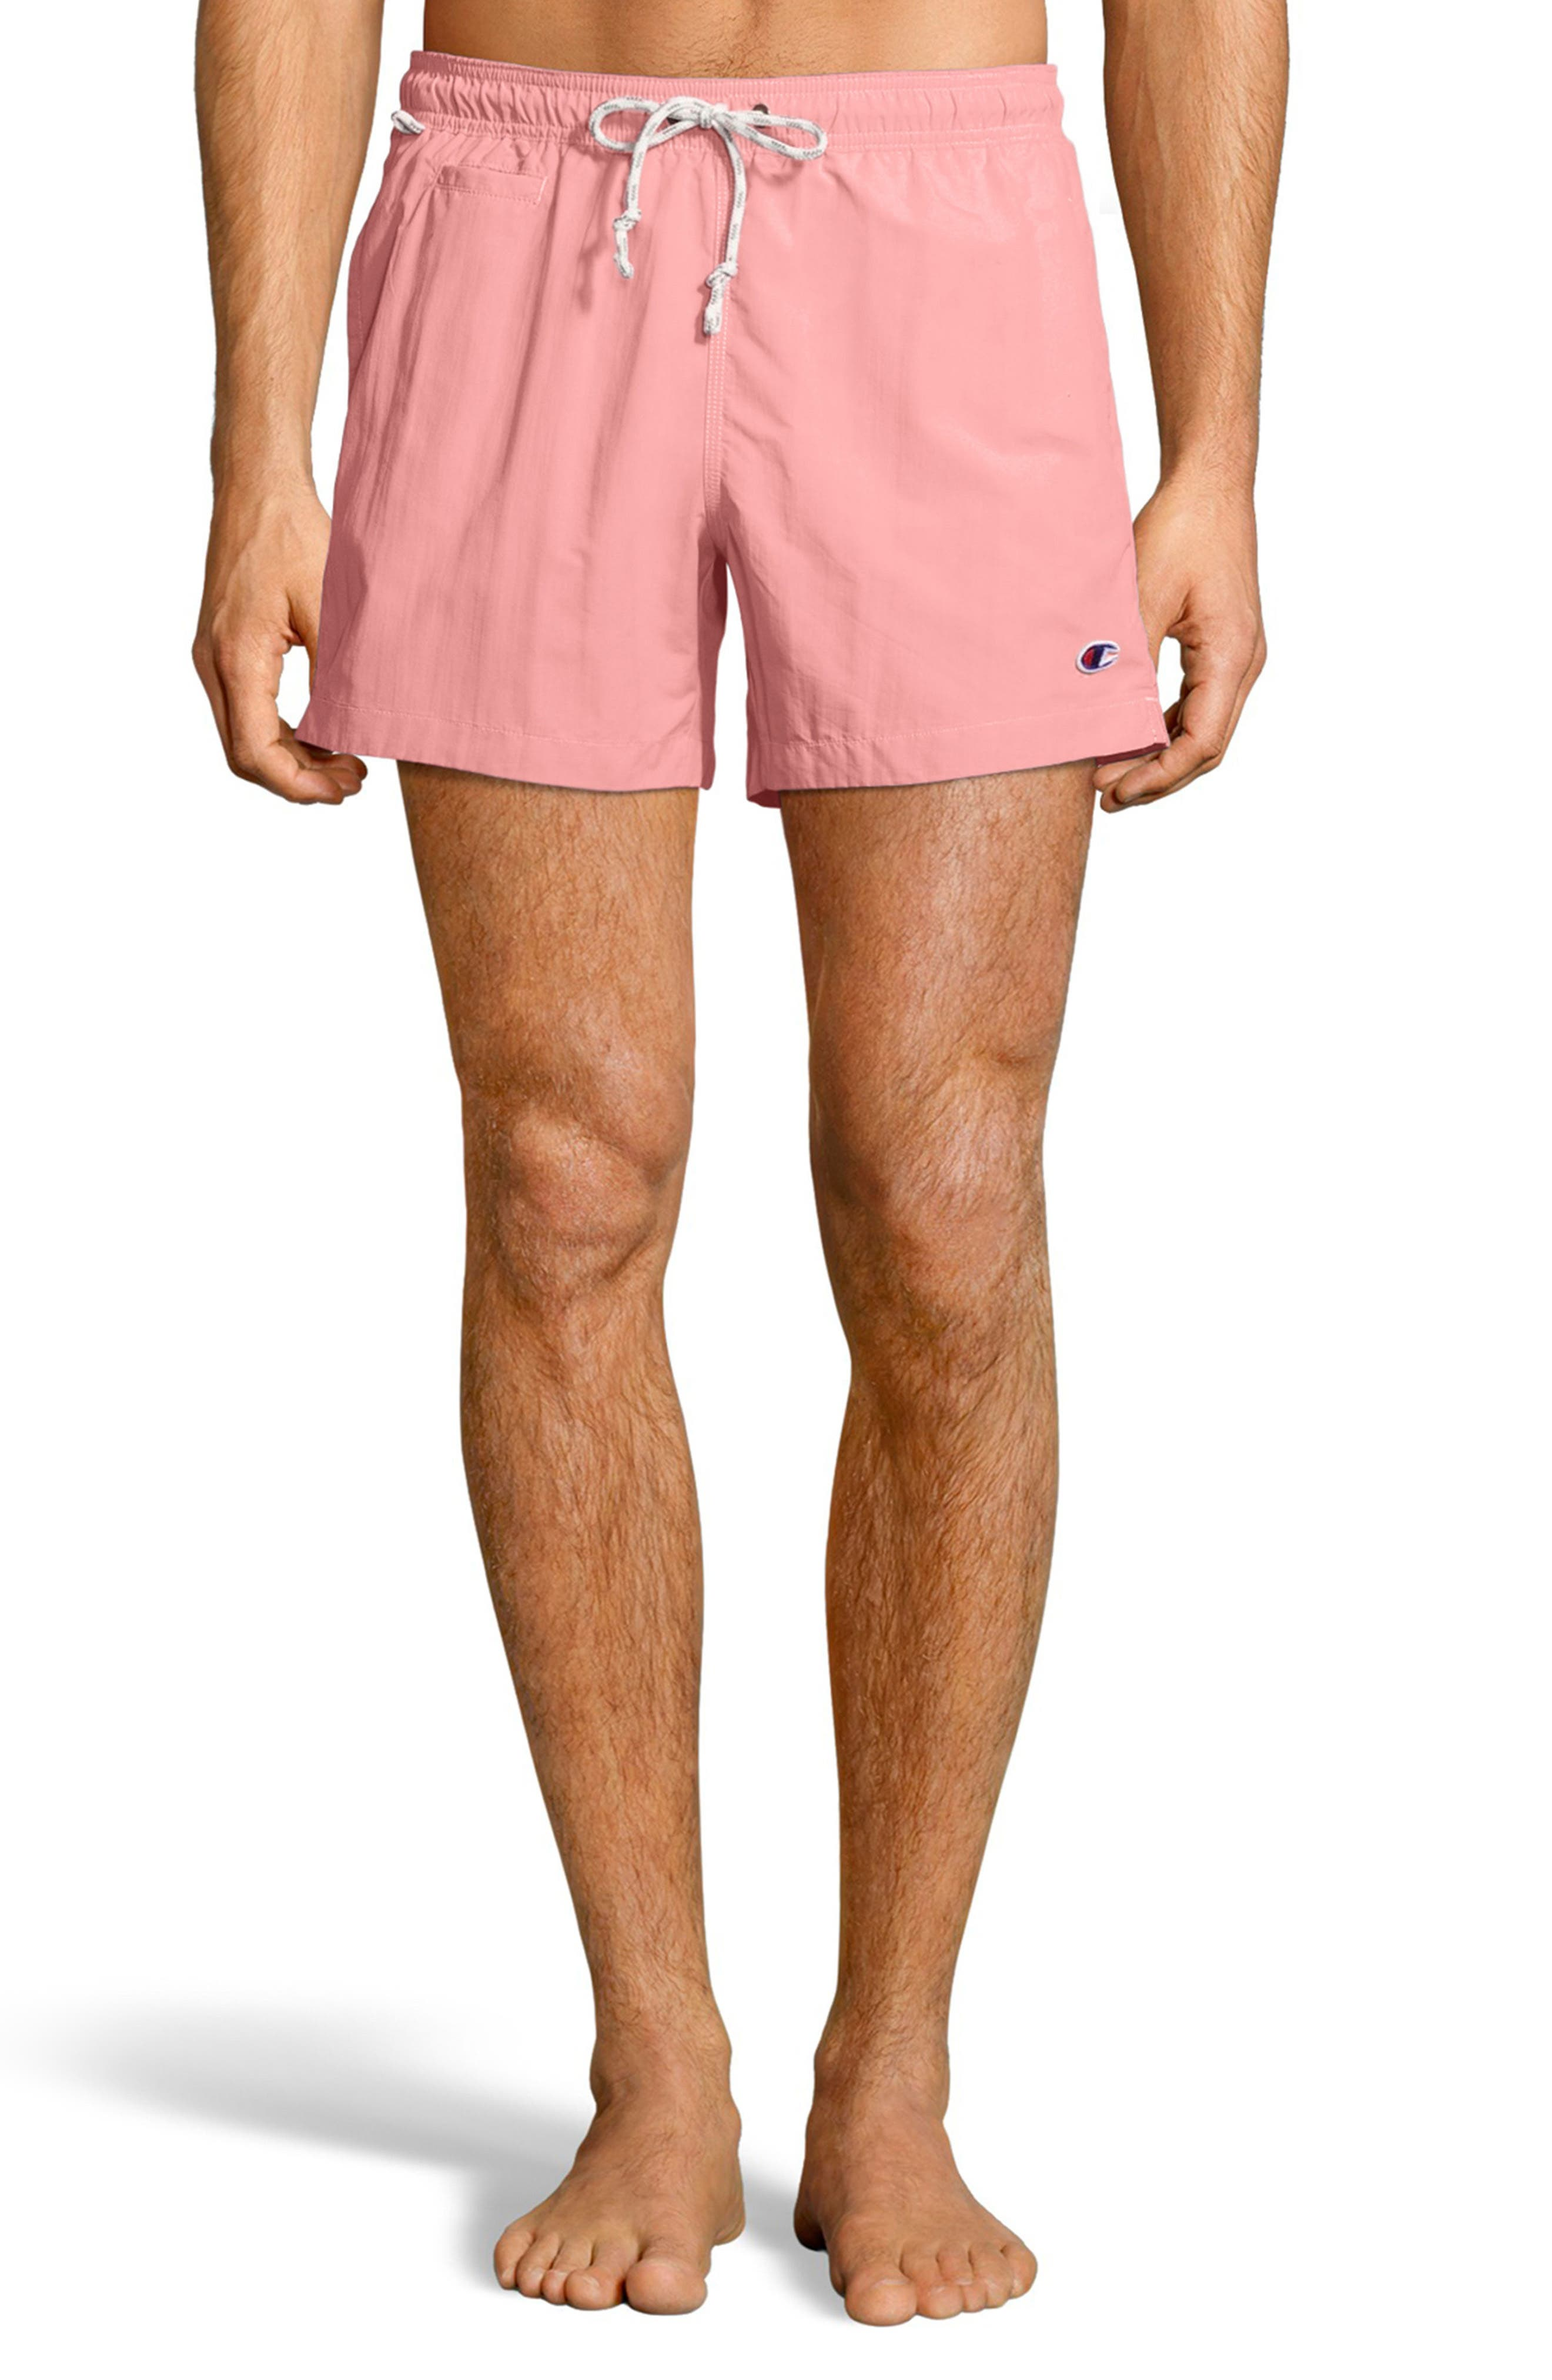 Pacific Sand Swim Trunks,                             Main thumbnail 1, color,                             Pink Bow